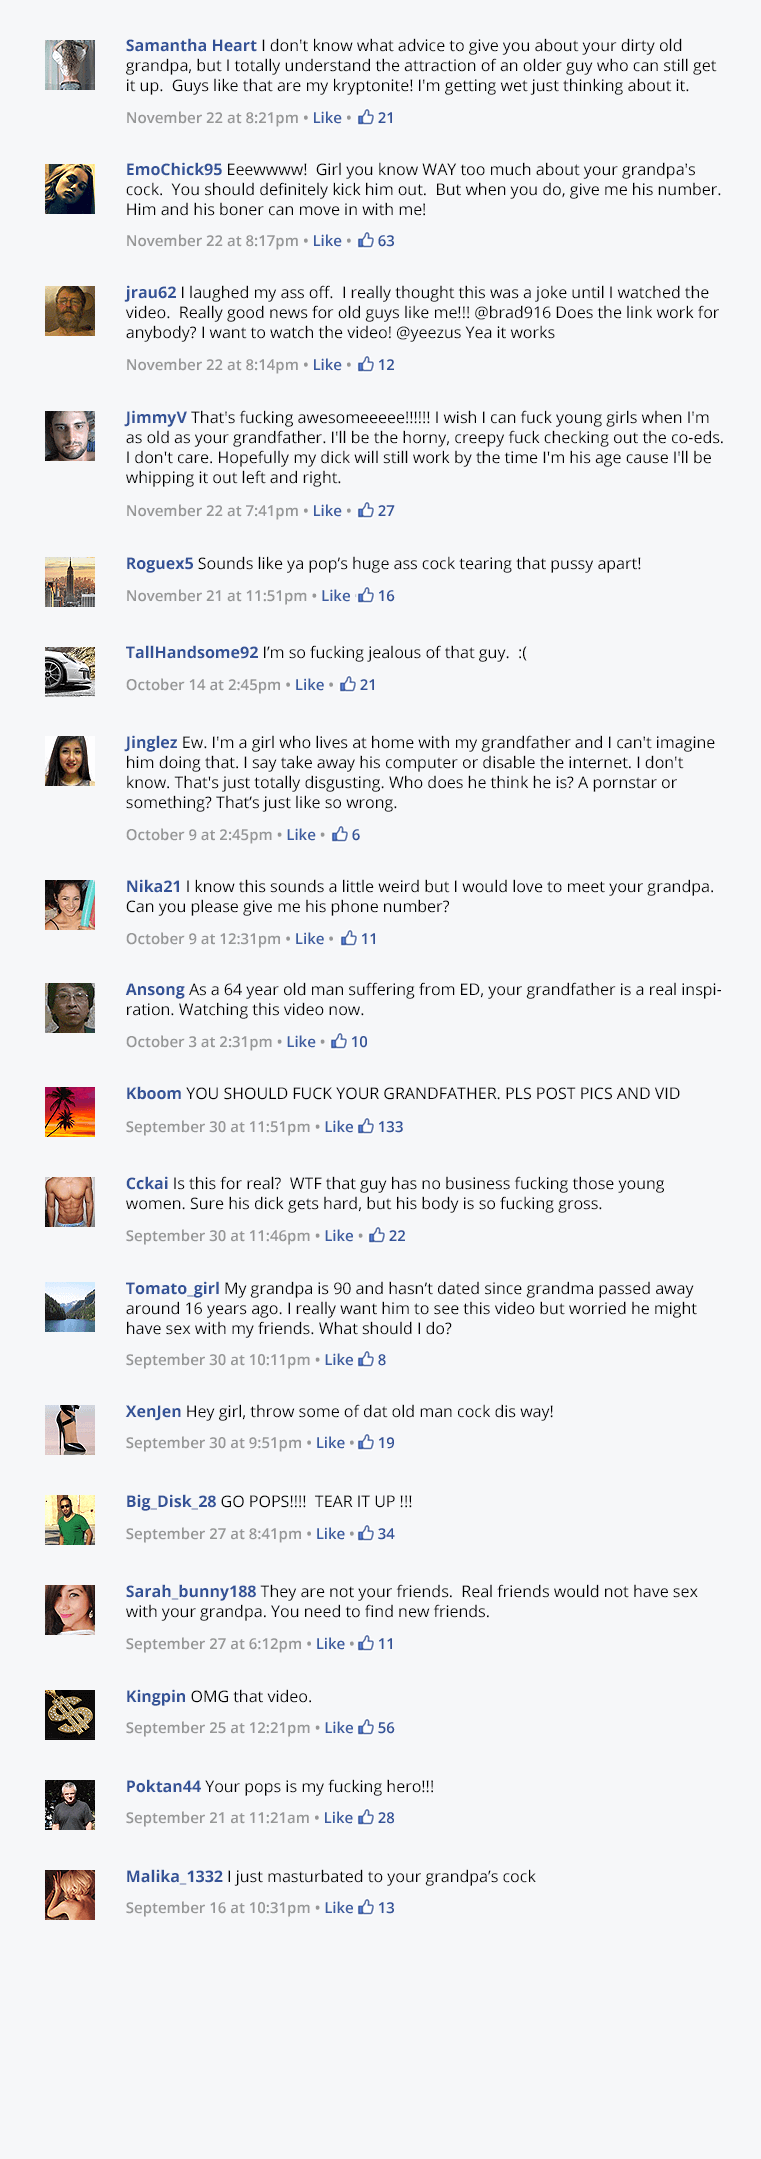 an image of facebook comments